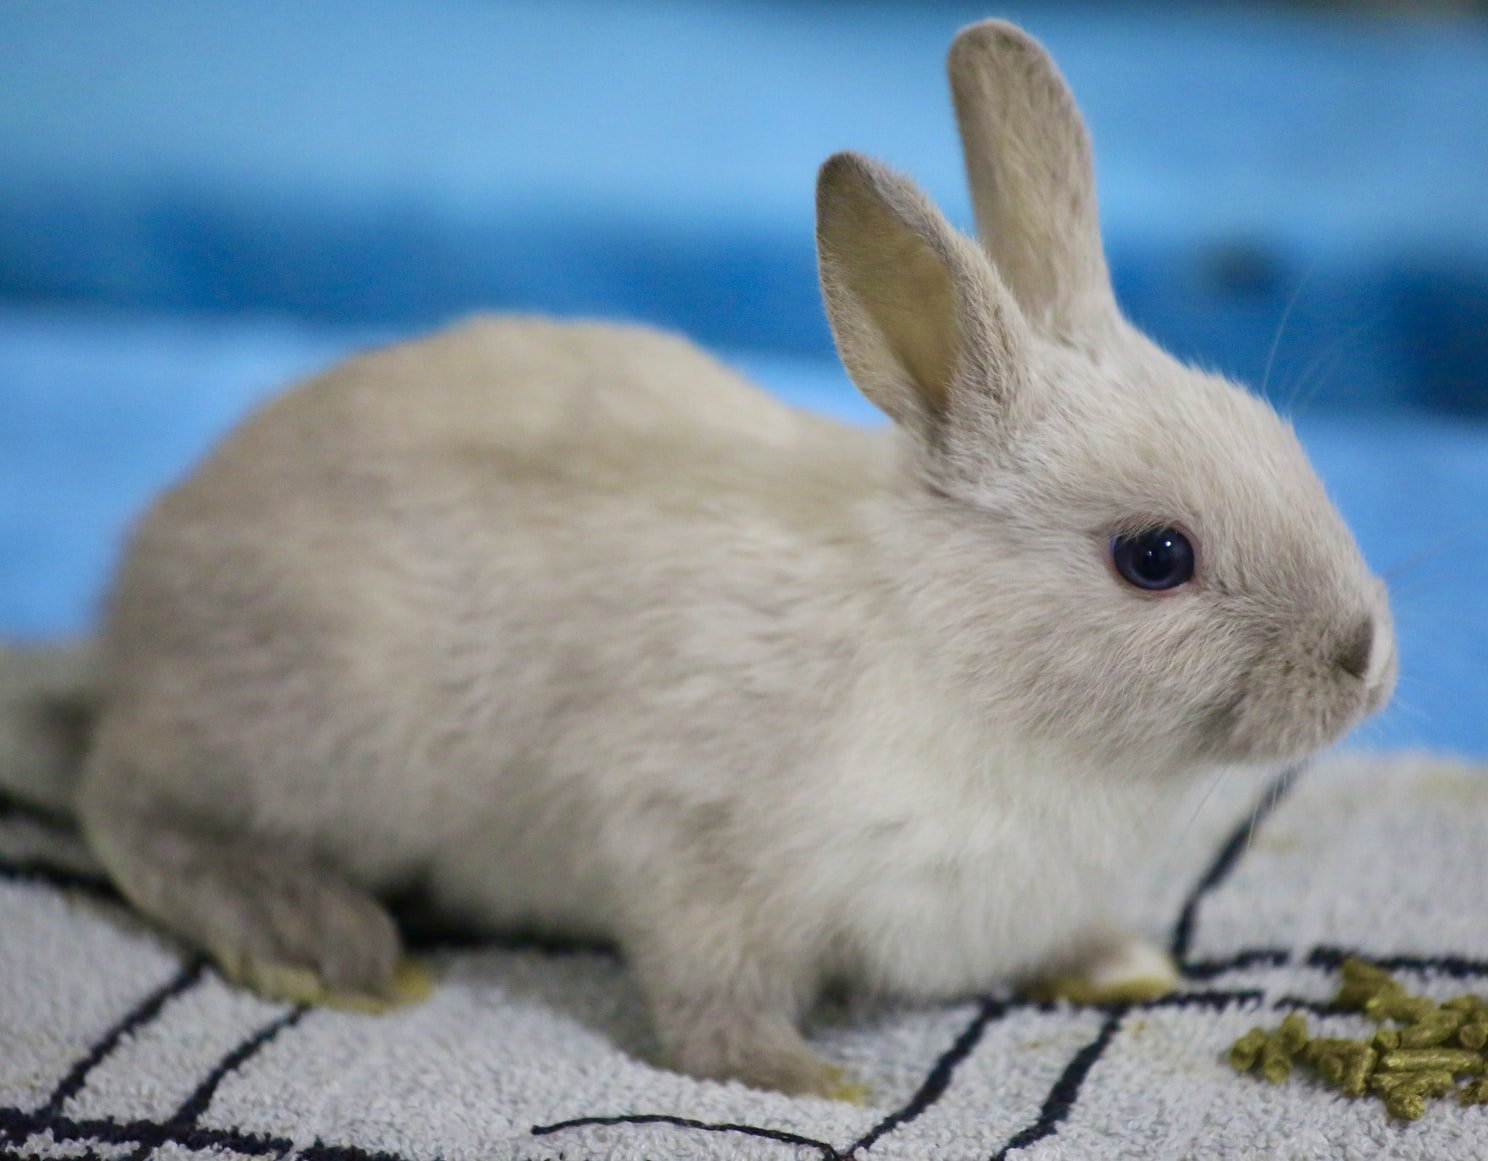 rabbit died suddenly with eyes open